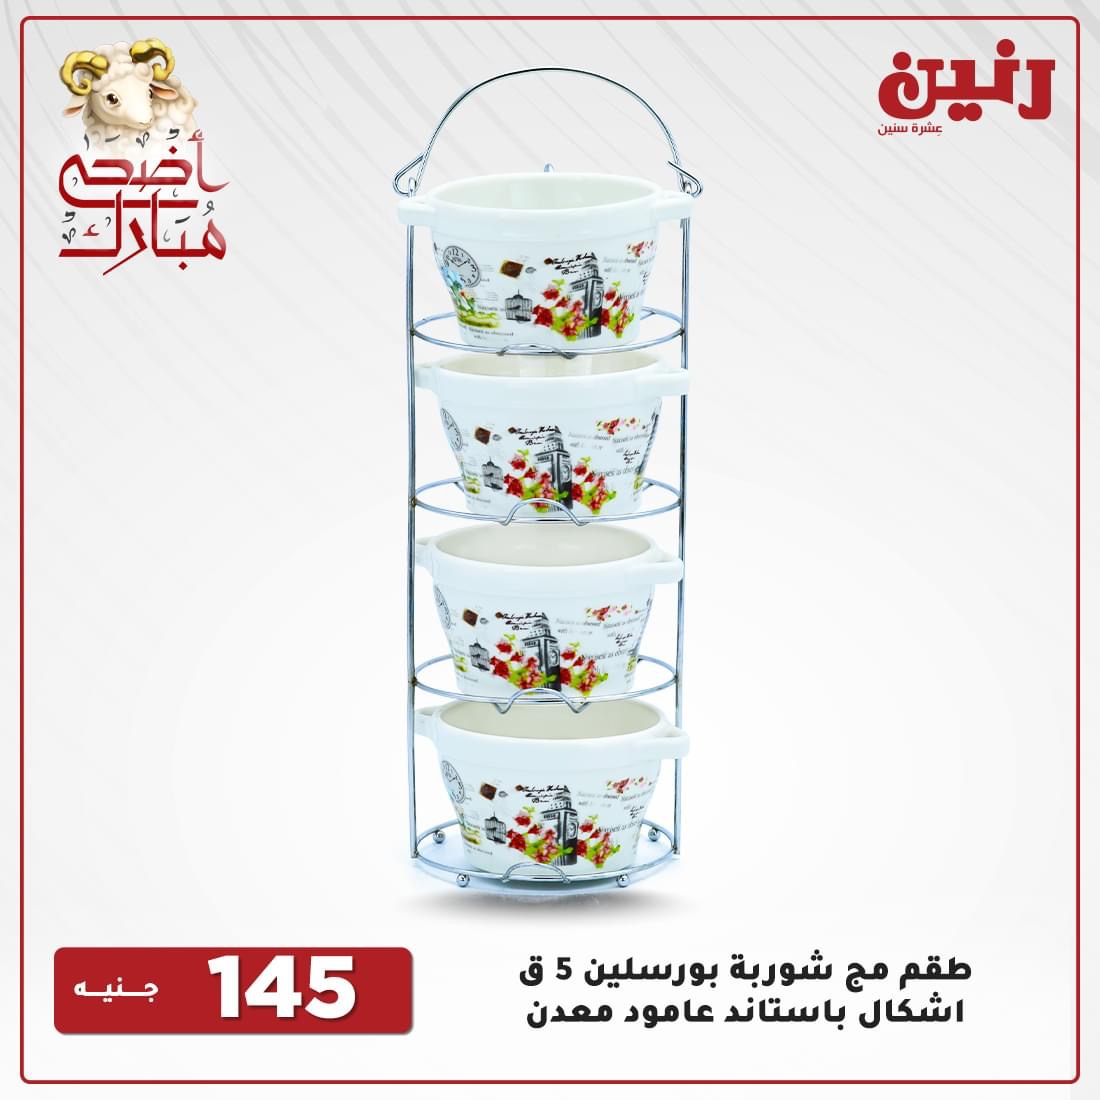 Raneen offers today for appliances and household appliances from July 22 to 24, 2021 15